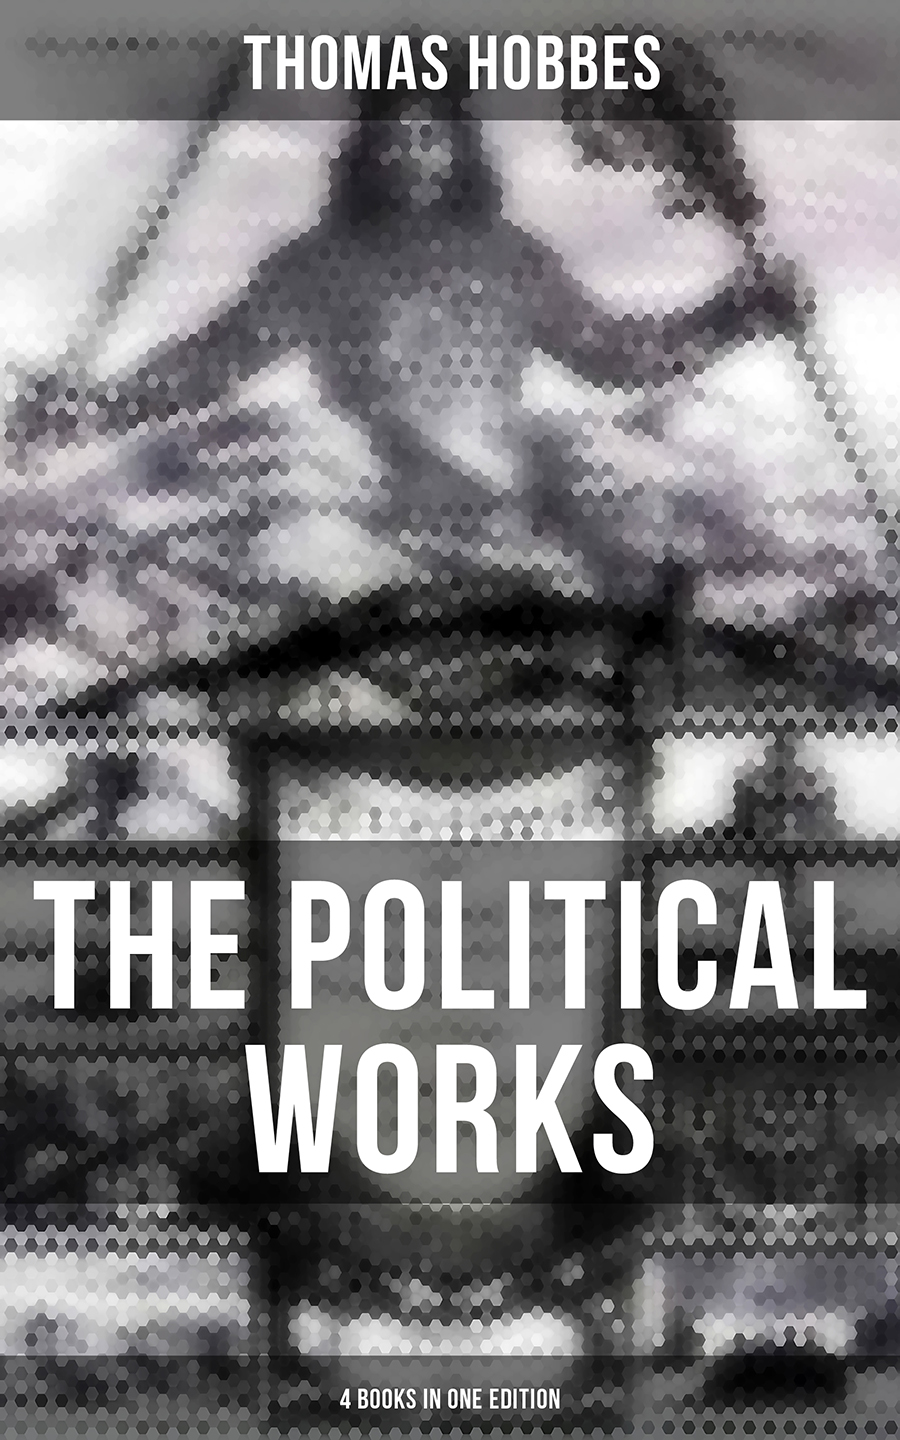 Thomas Hobbes The Political Works of Thomas Hobbes (4 Books in One Edition) thomas schaff in the beginning